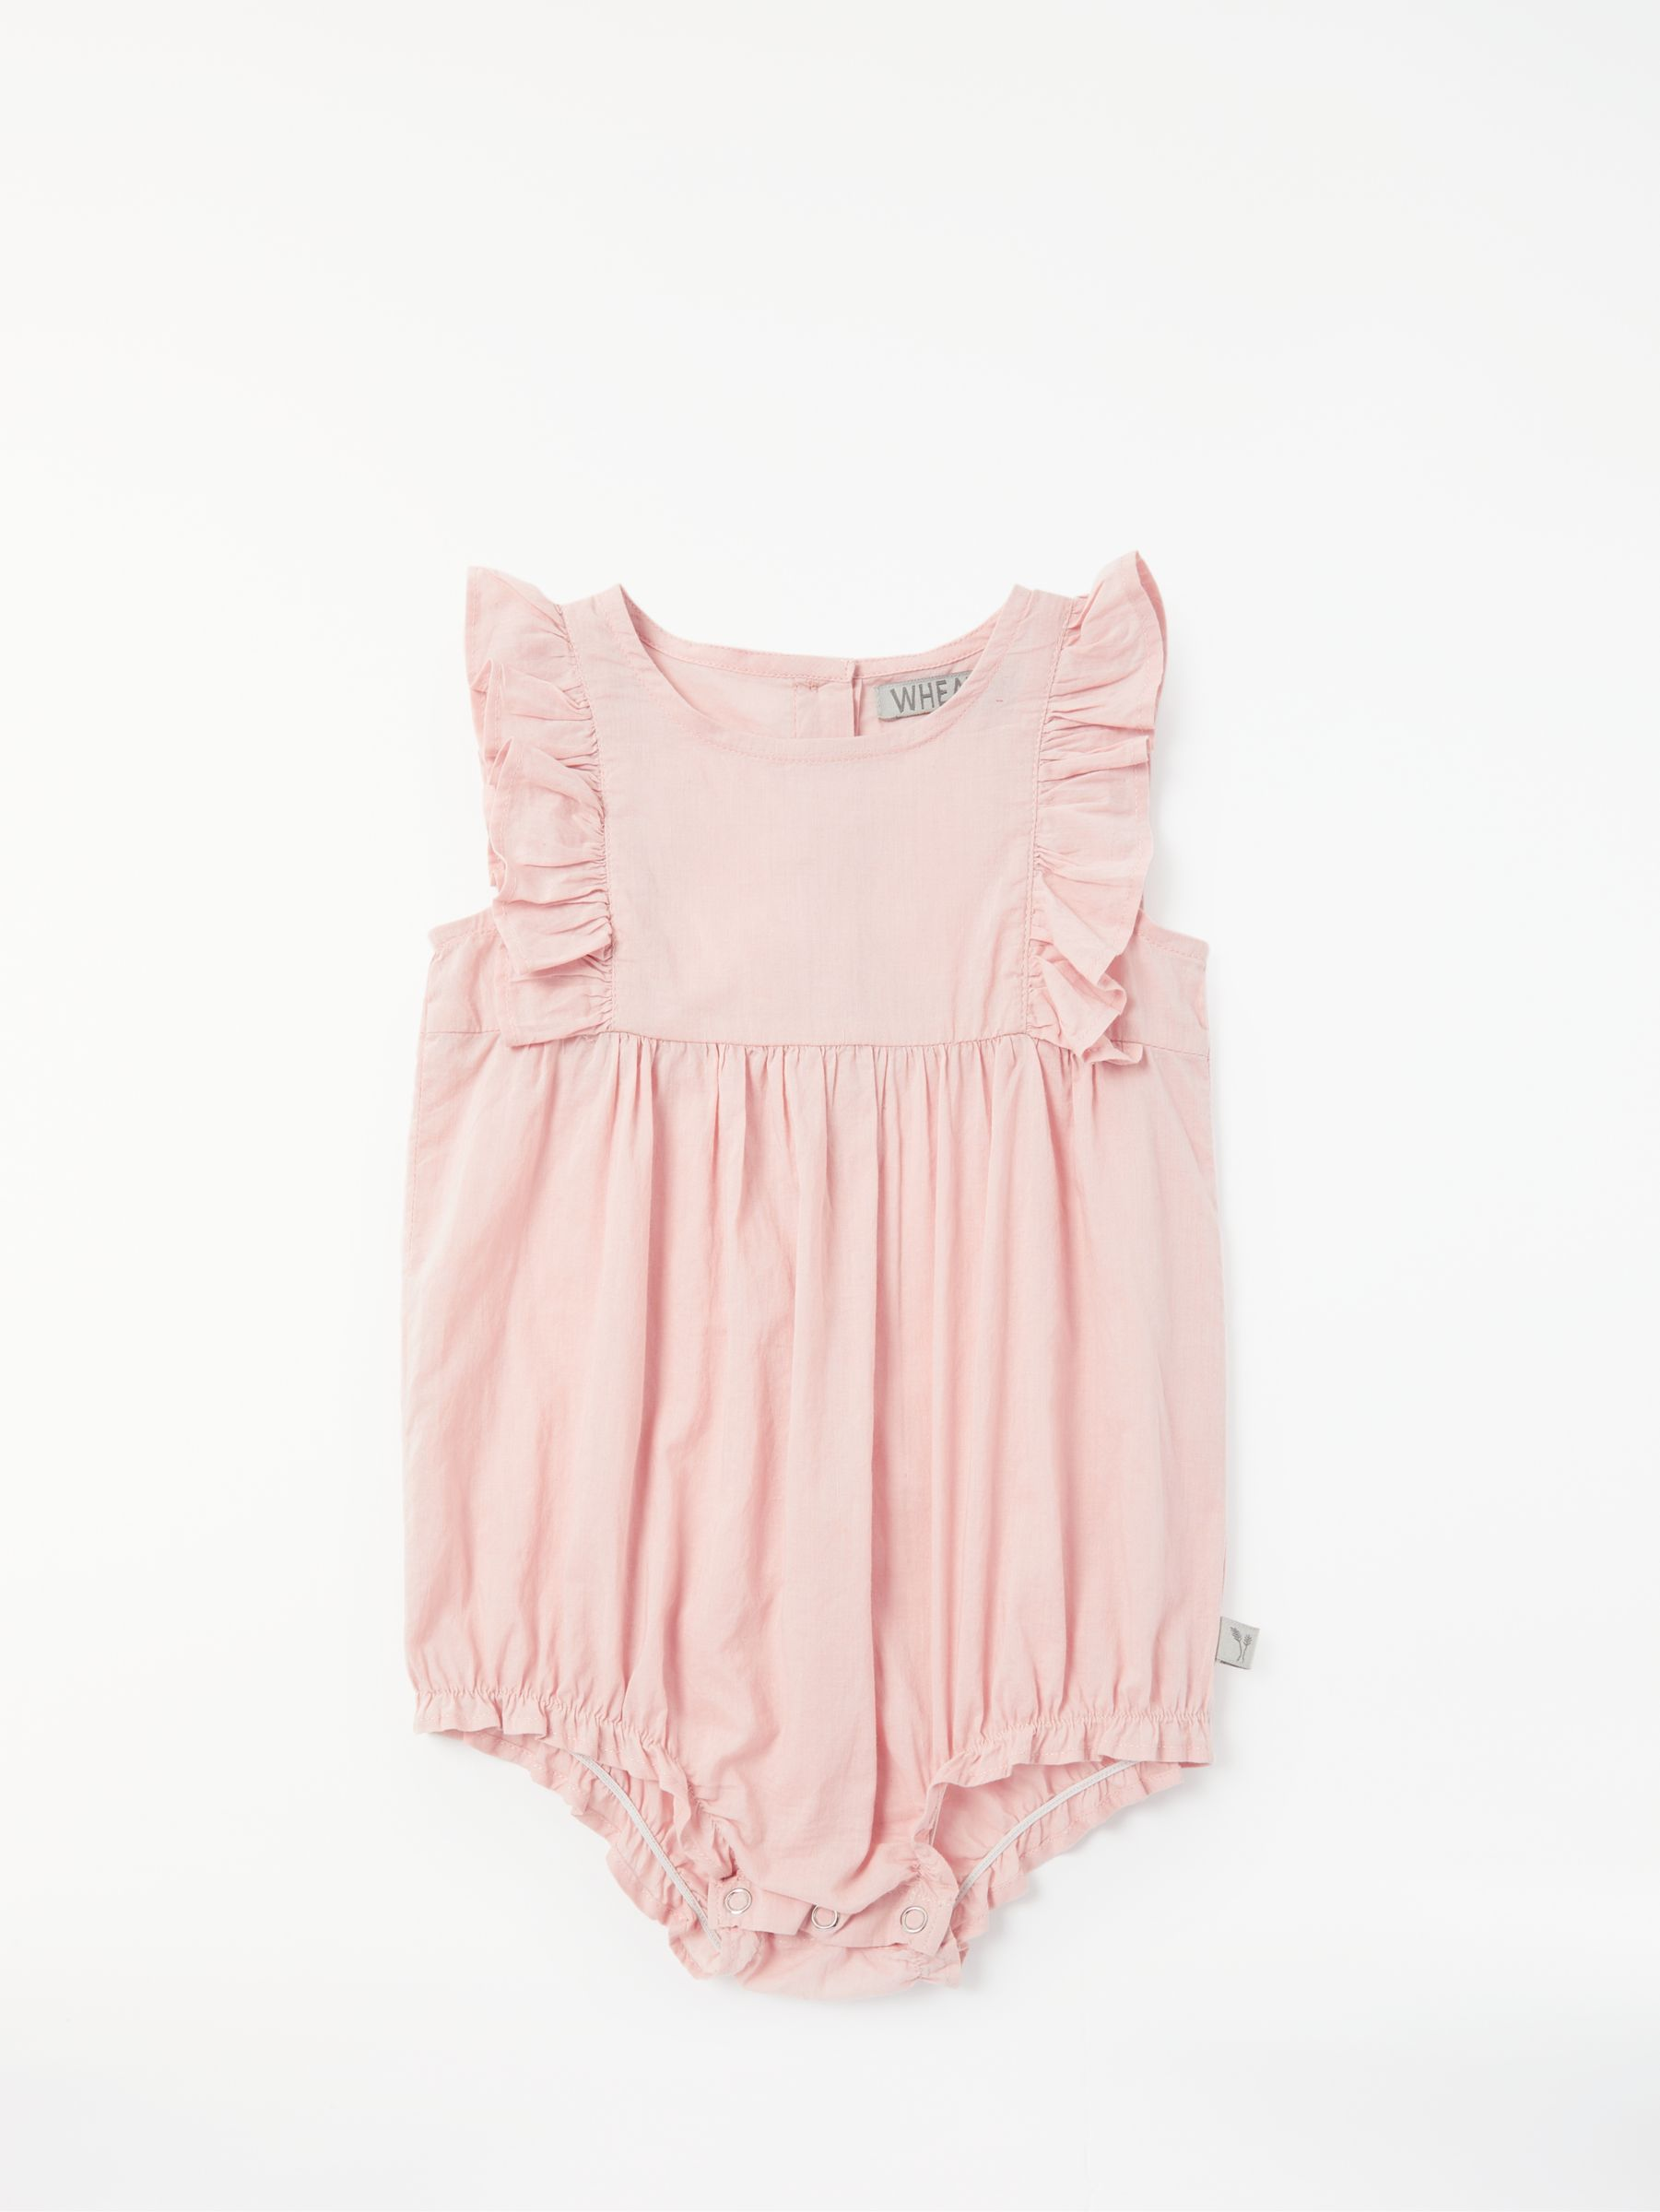 hight resolution of buywheat baby emmaline frill romper rose 1 month online at johnlewis com